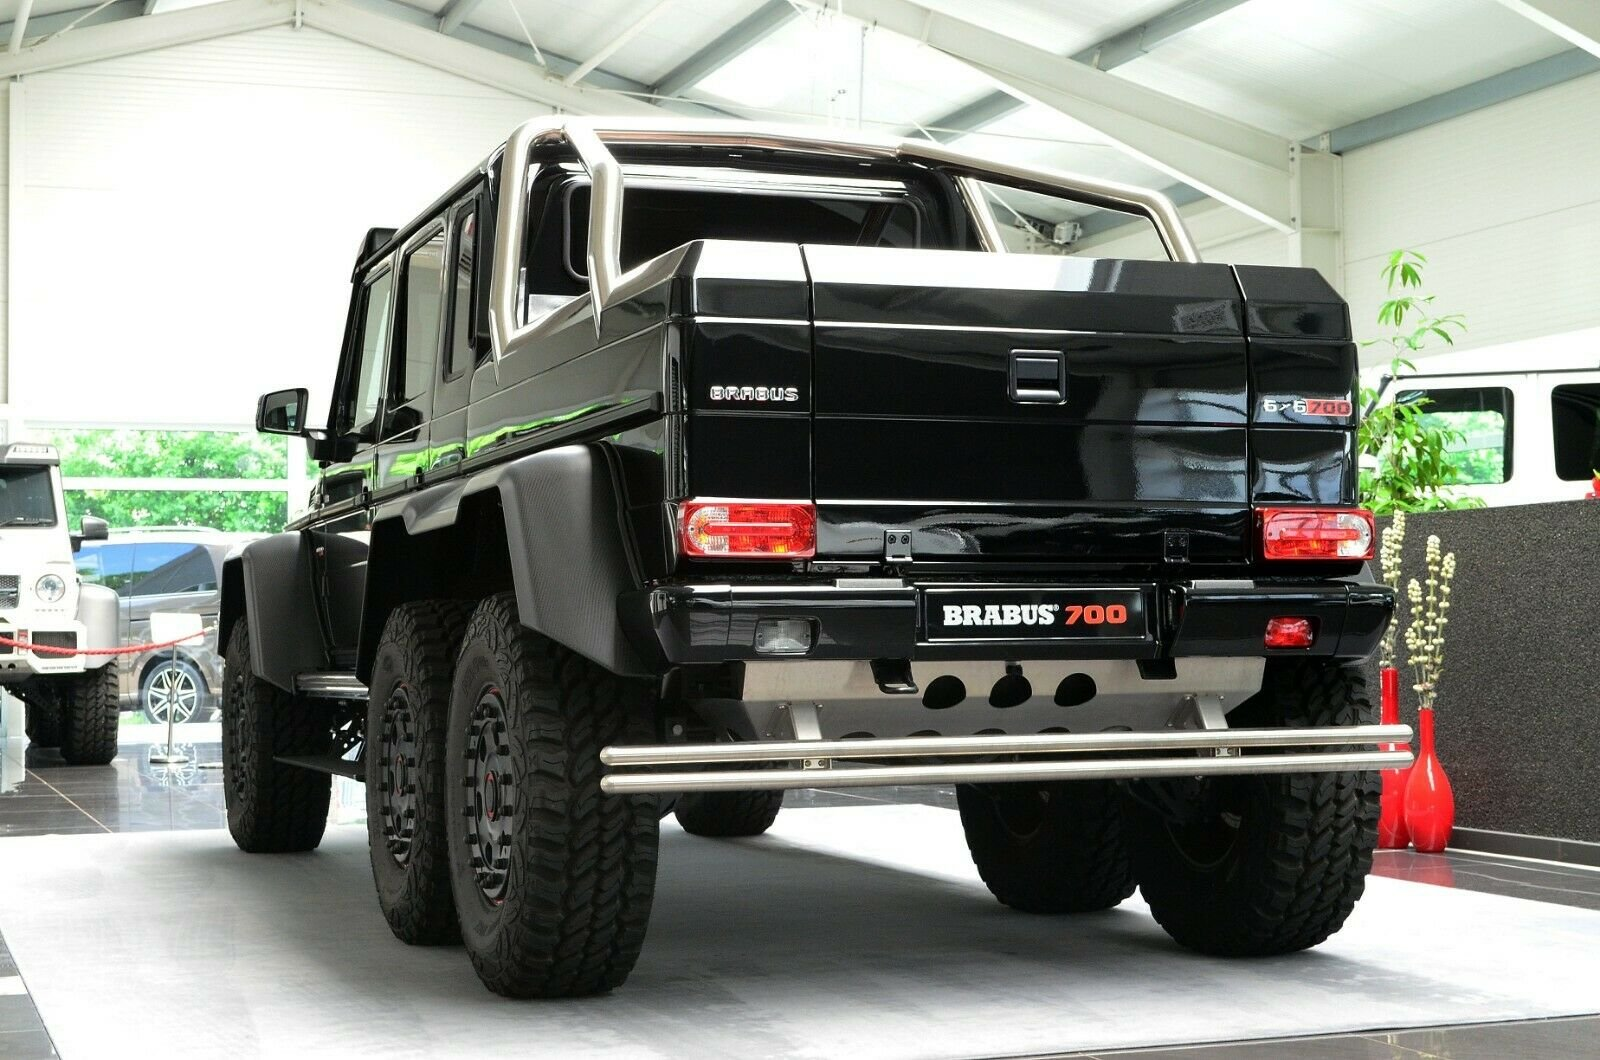 Mercedes-Benz G 63 AMG 6x6 Brabus700 - 1of15 (8)